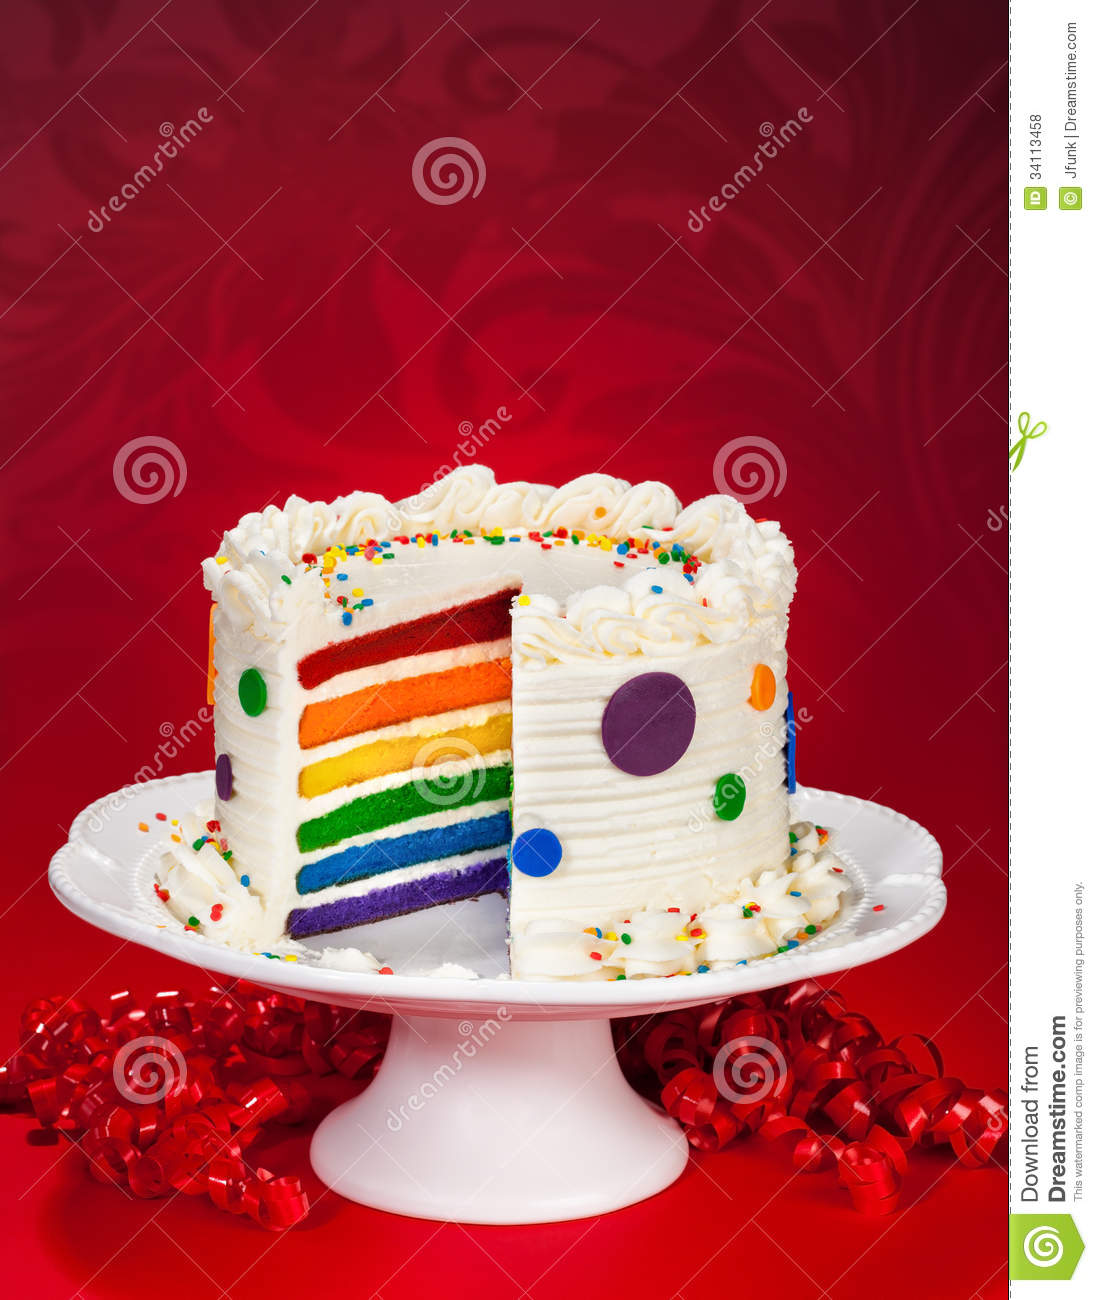 Birthday Cake stock photo Image of polka butter nobody 34113458